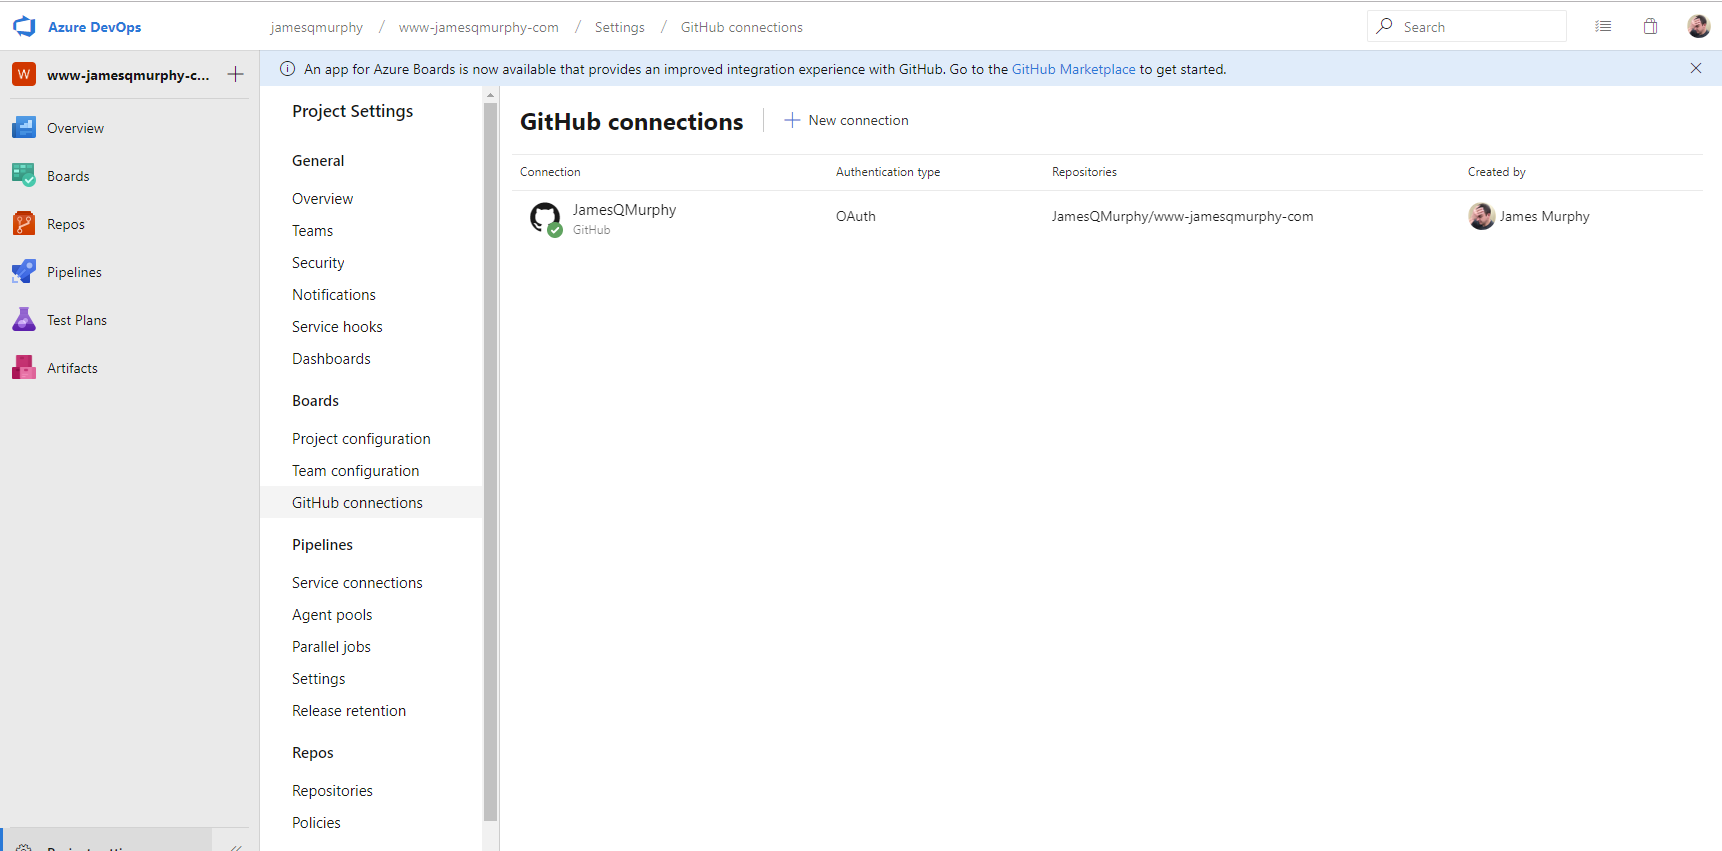 GitHub Connections in Azure DevOps showing single connection to JamesQMurphy